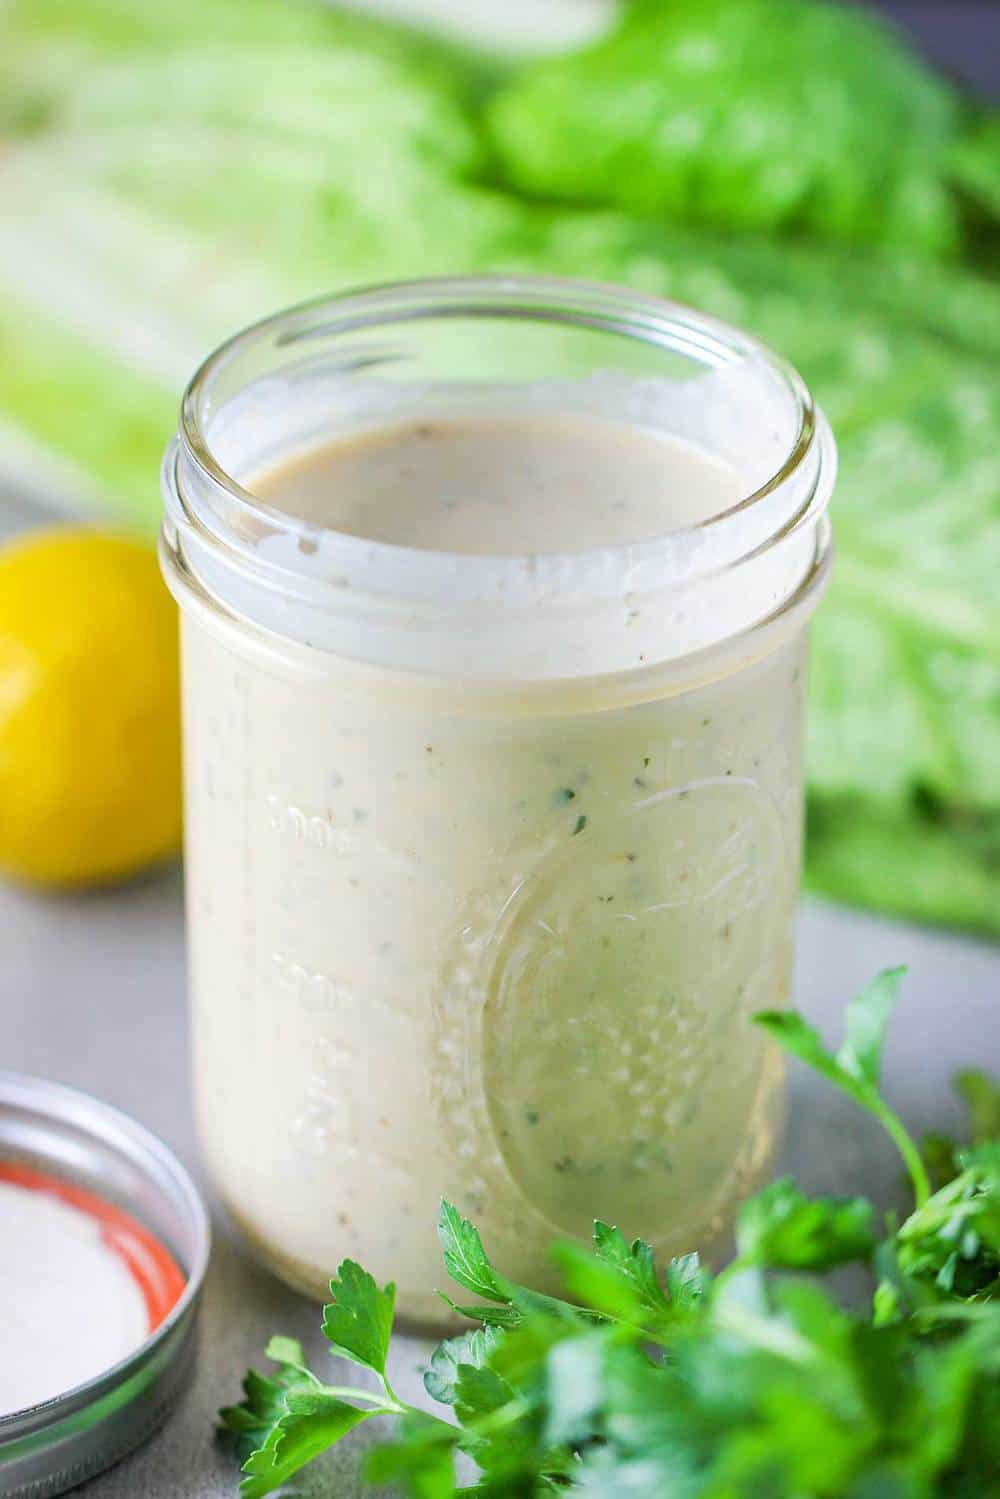 A mason jar holding Caesar dressing with lettuce and a lemon nearby.